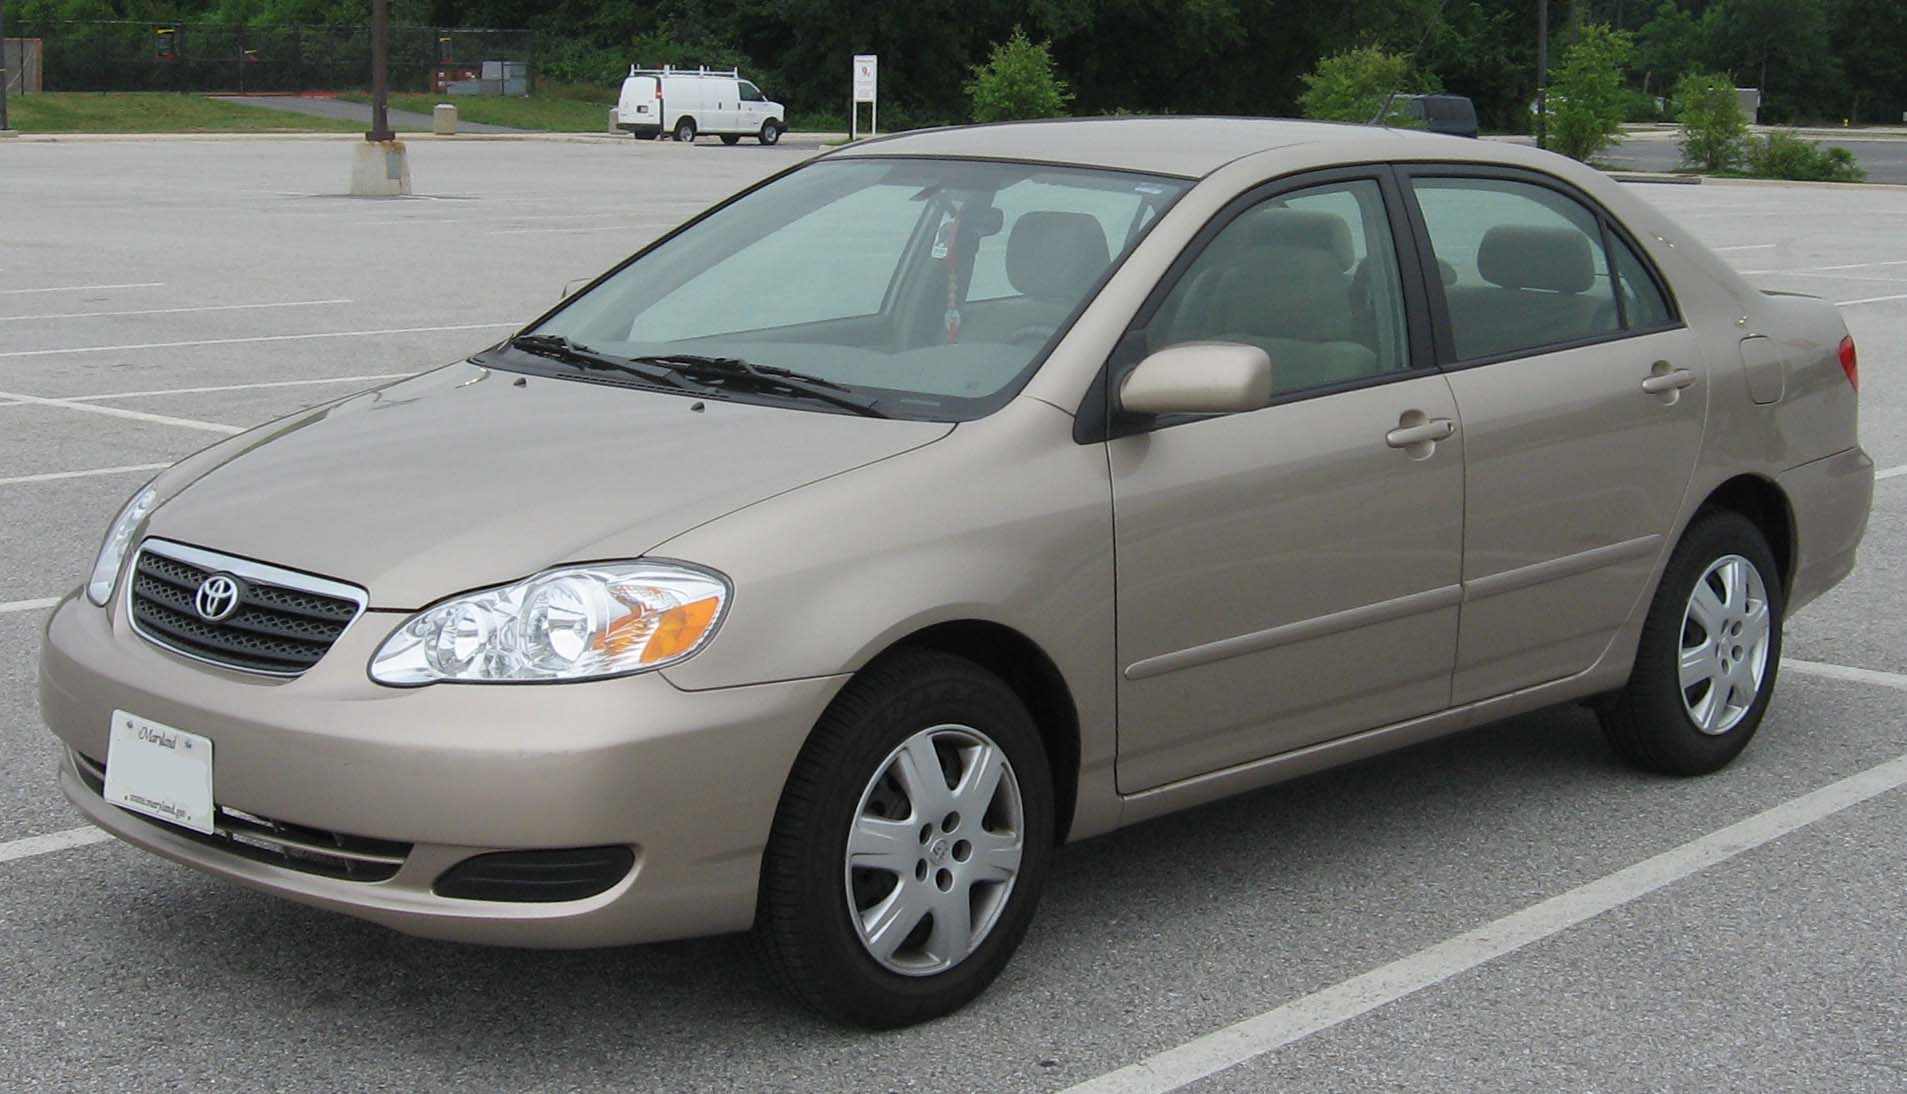 2005 Toyota Corolla Information and photos ZombieDrive